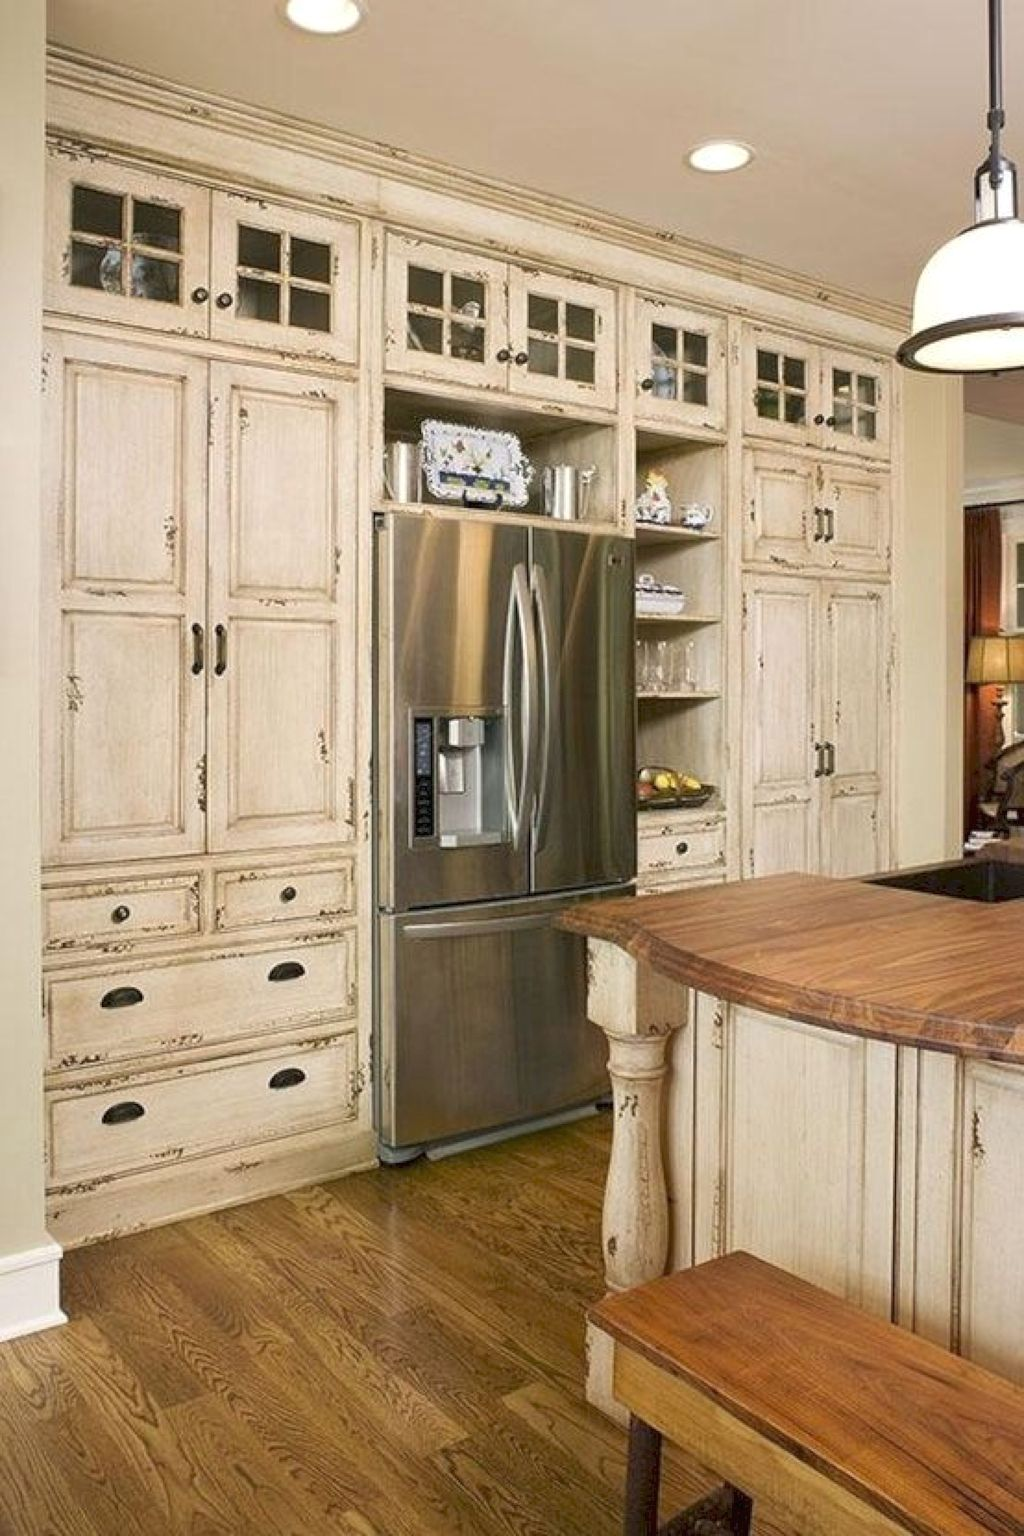 Love These Cabinets | #farmhouse #farmhouse_kitchen #farmhouse_decor